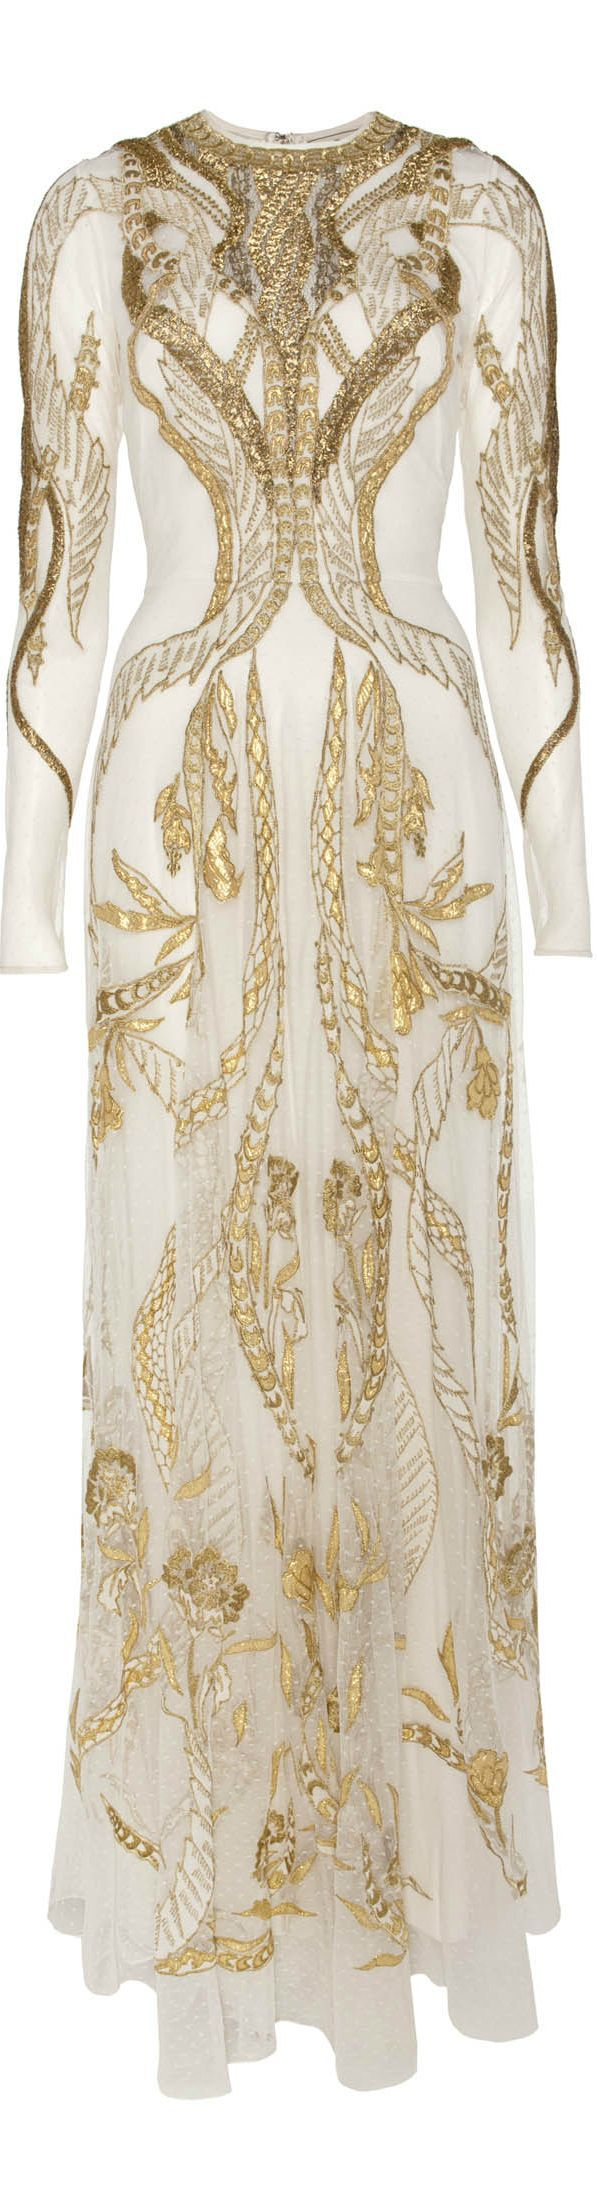 Temperley London ● Gold Evening Gown